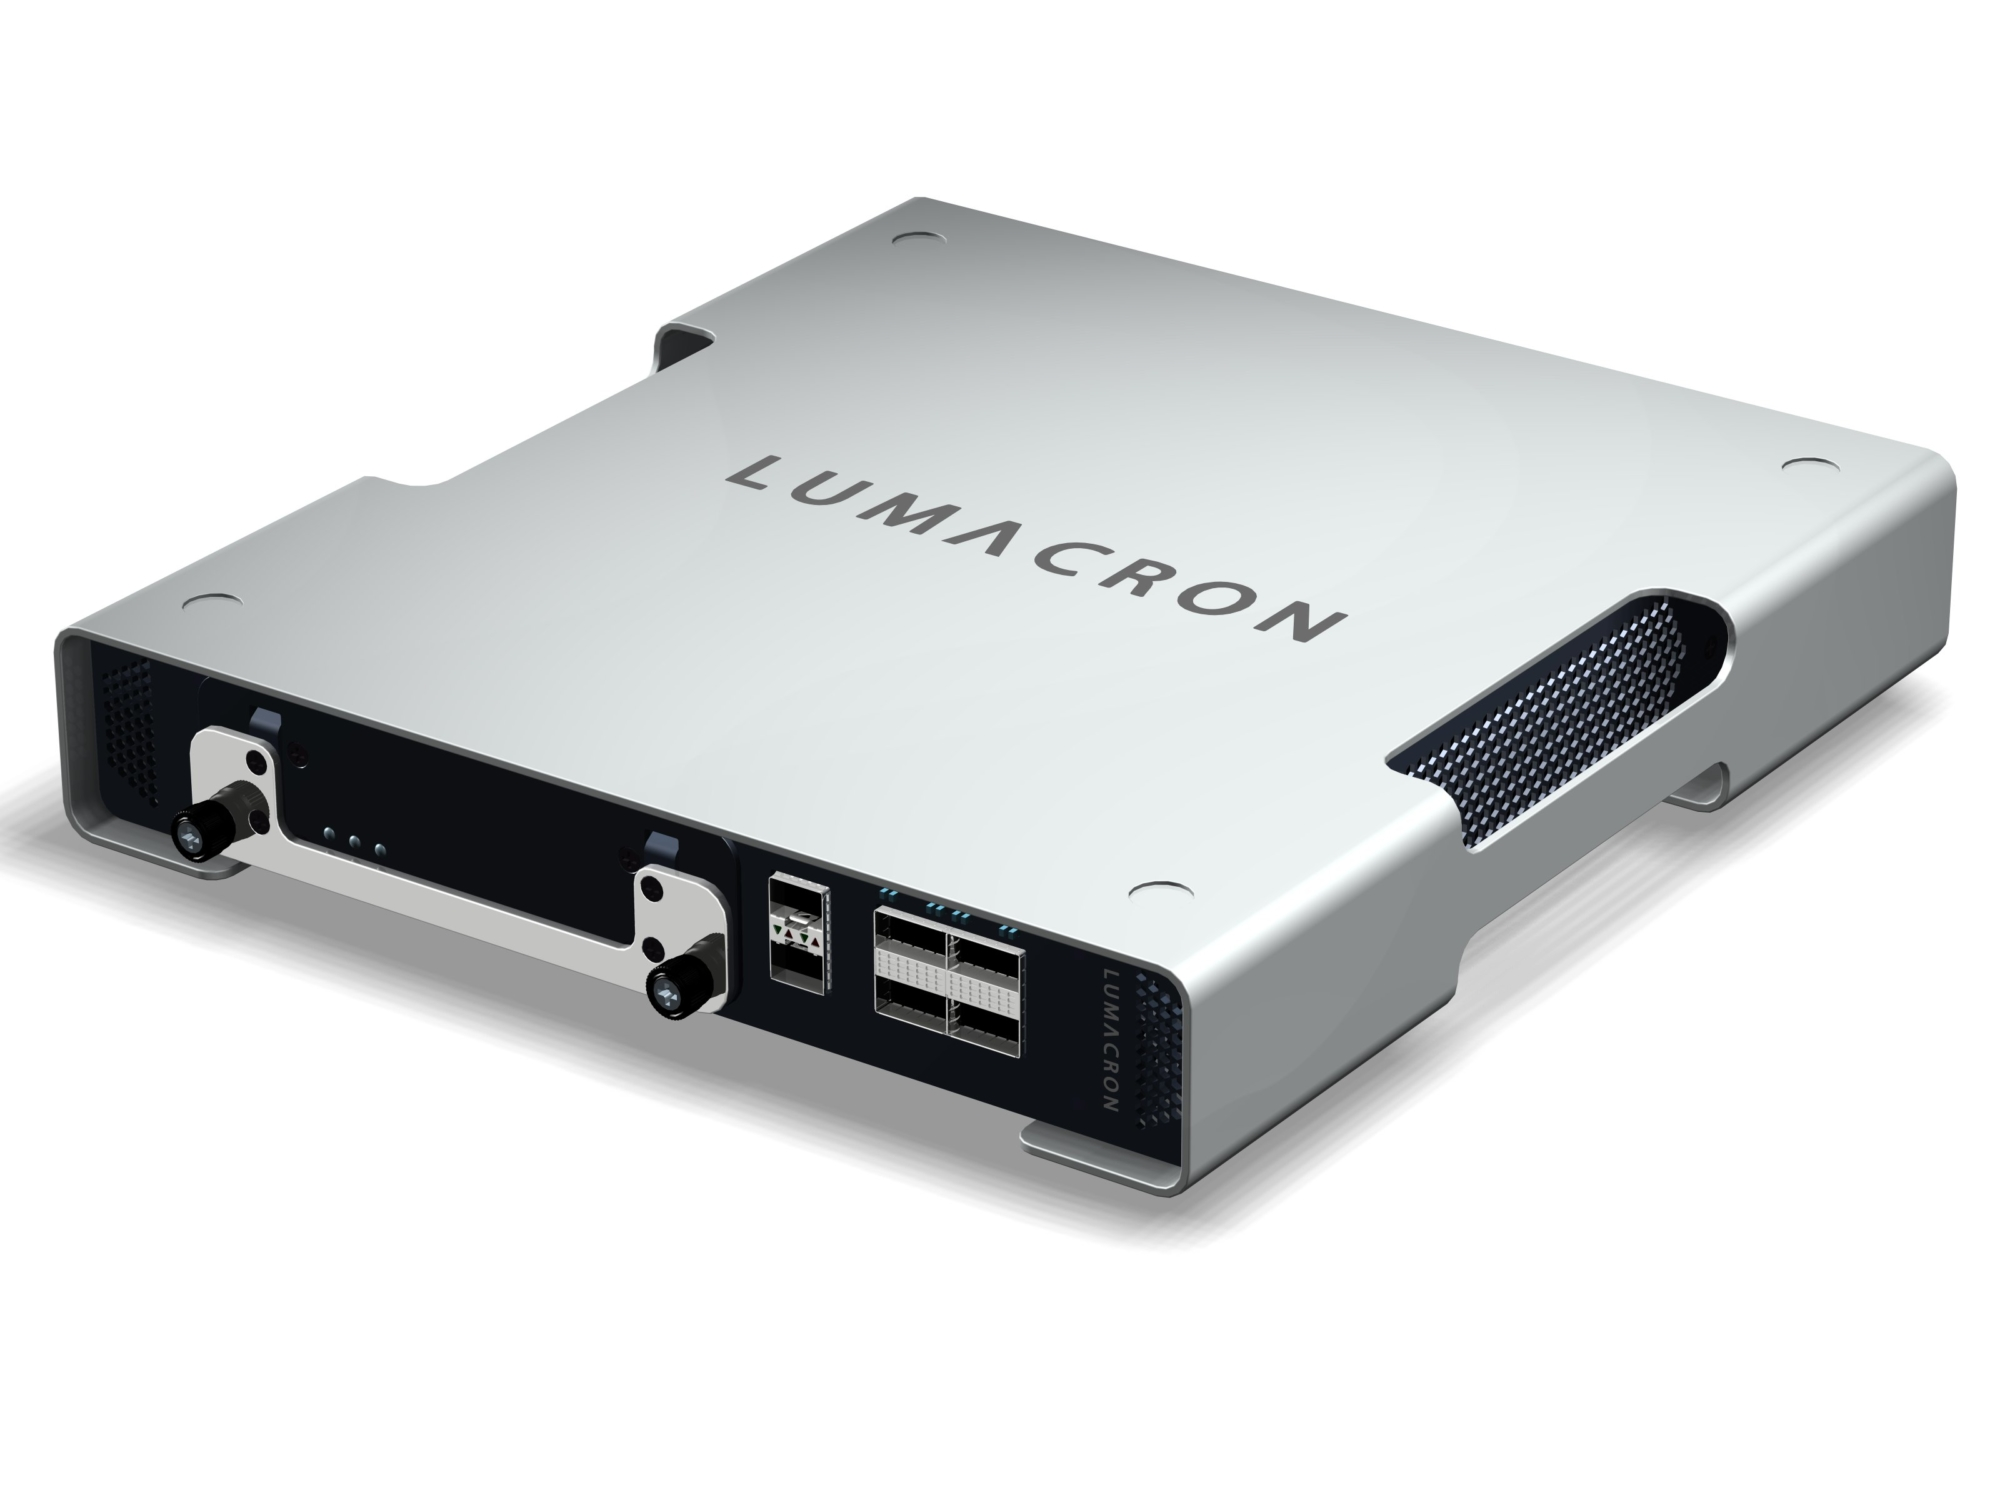 Athena 100Gbps Network Packet Recorder